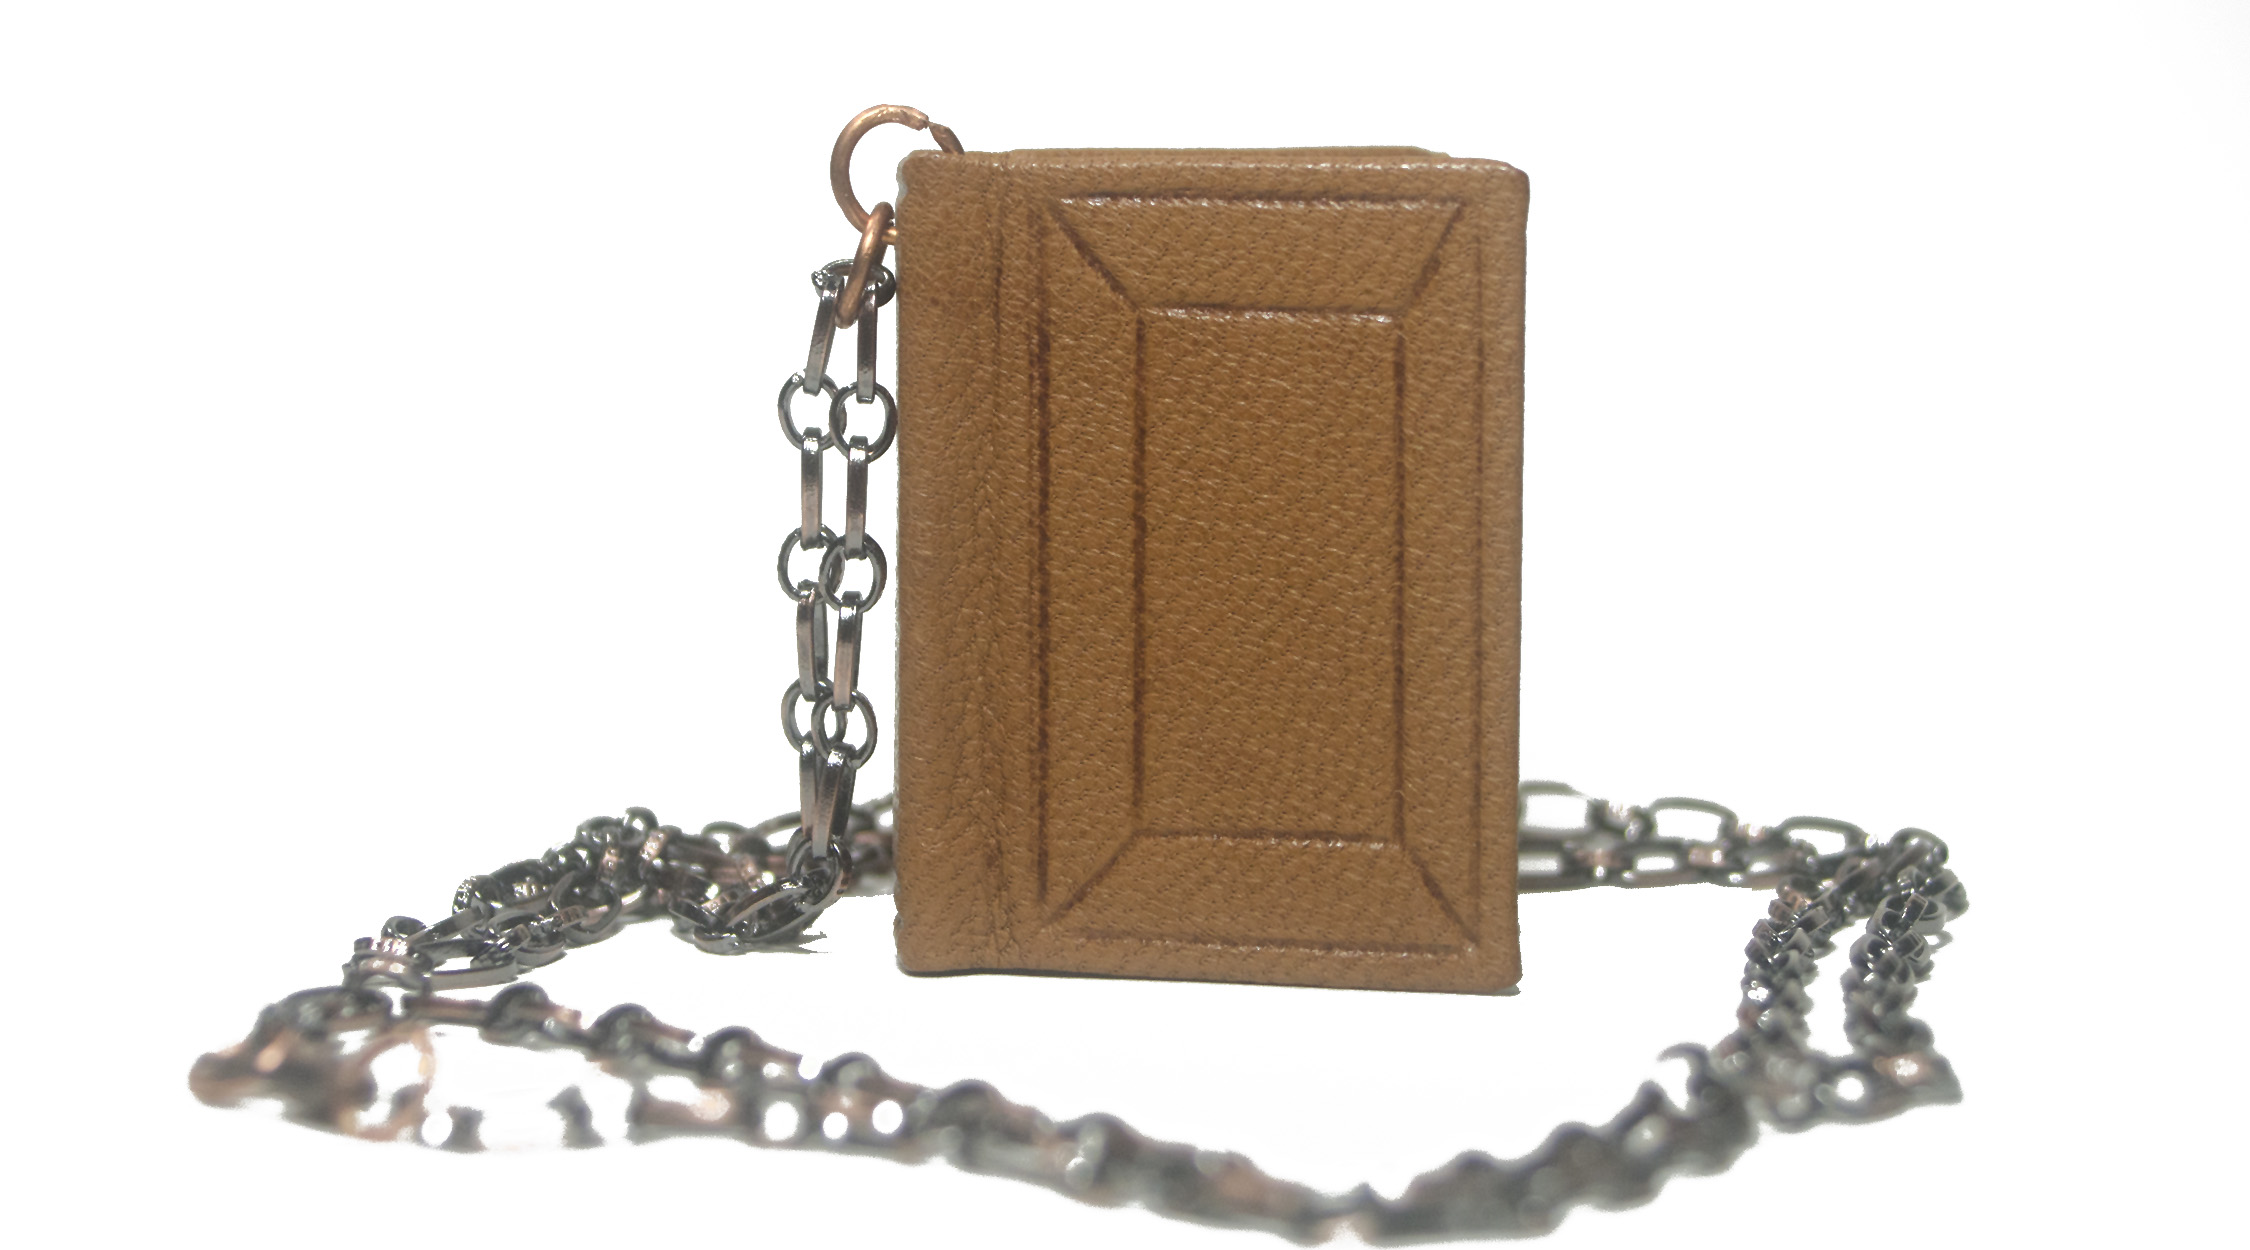 Handmade leather book pendant necklace